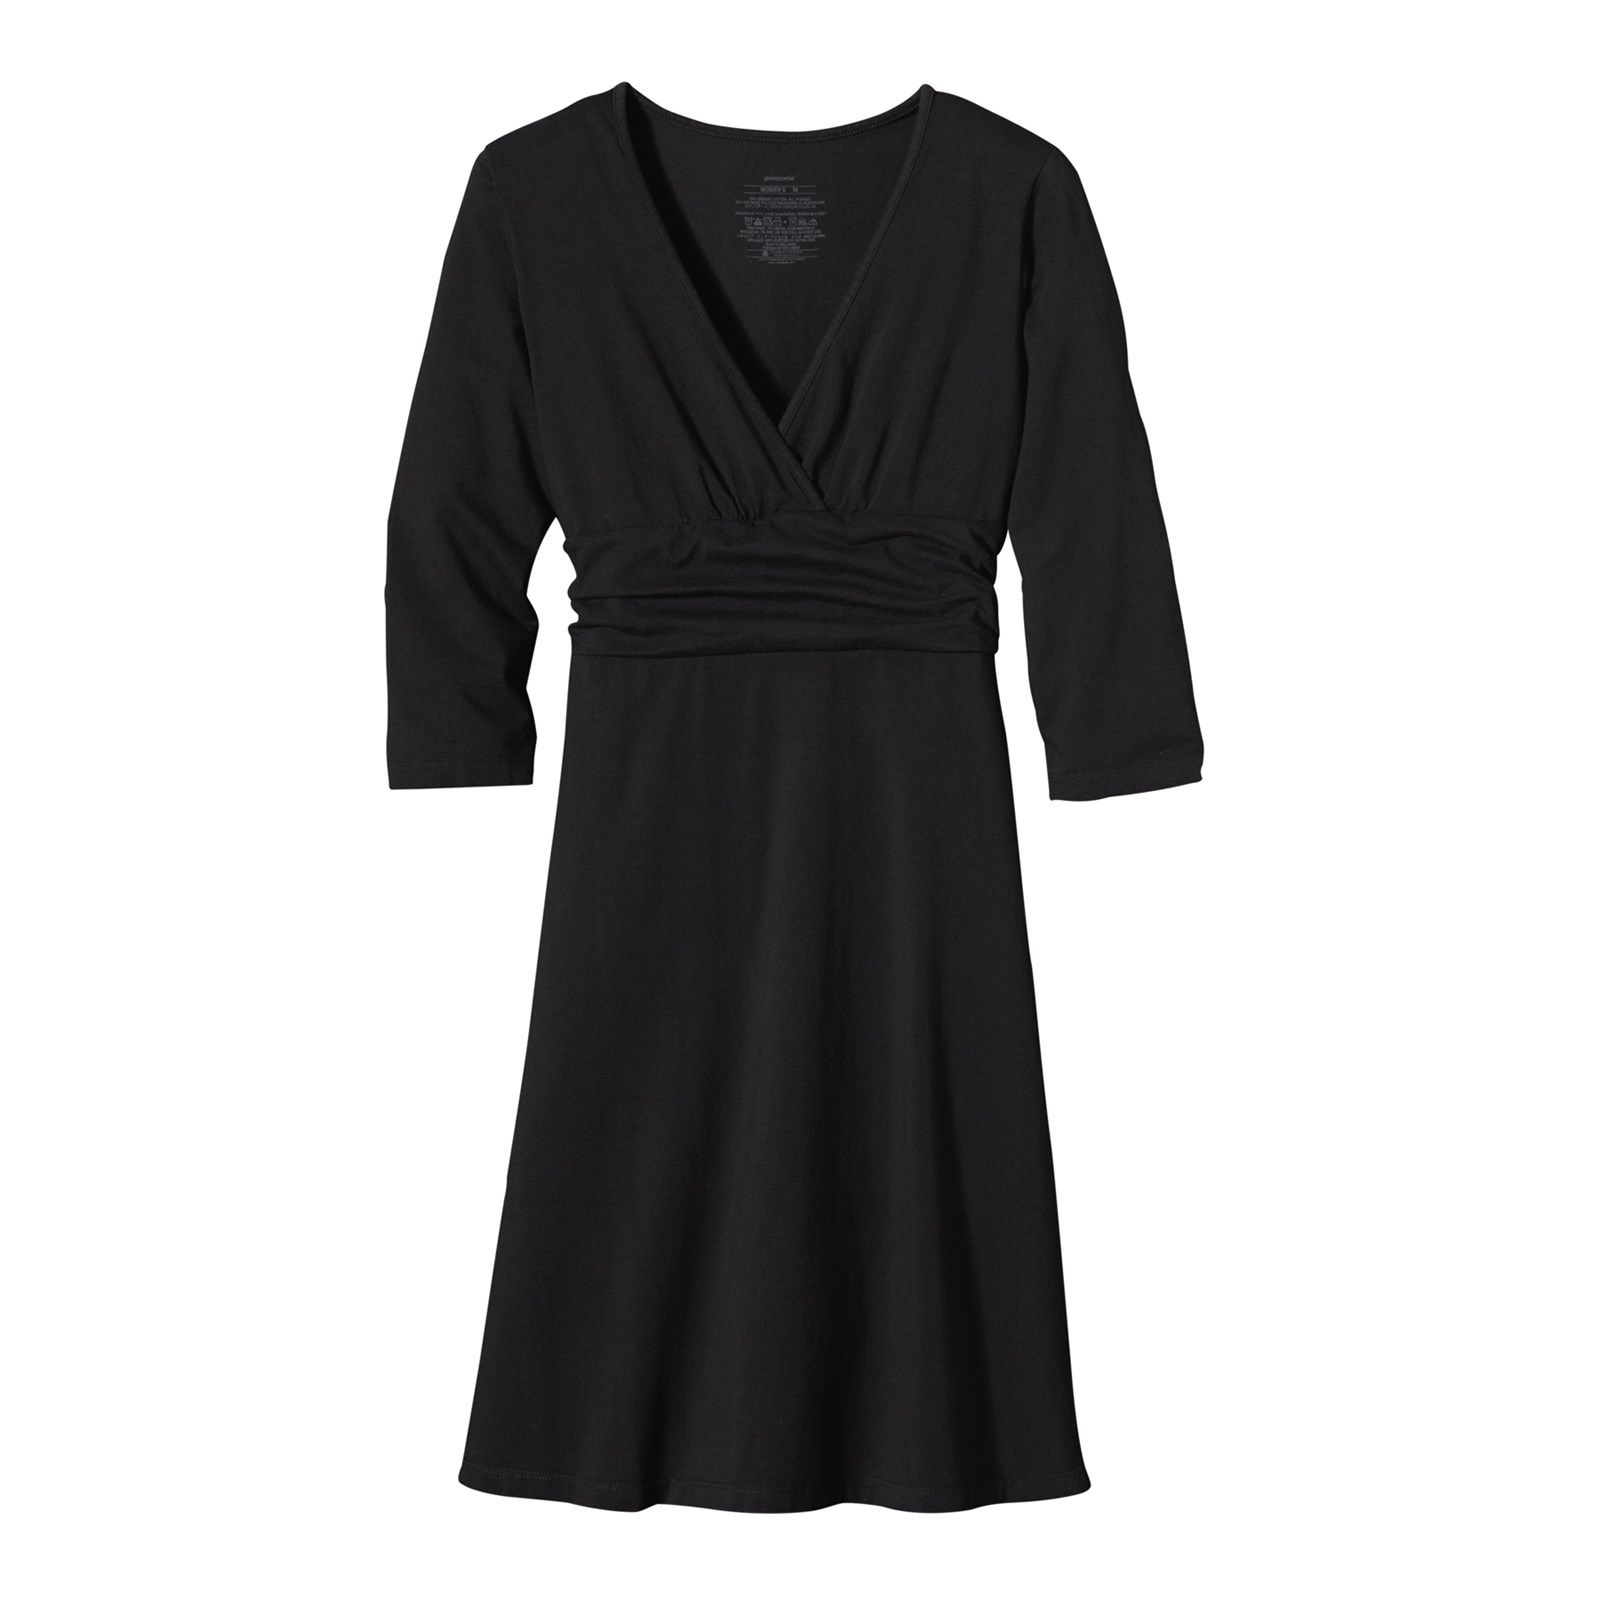 FEATURES of the Patagonia Women's Margot Long Sleeve Dress Soft organic cotton with stretch for mobility Deep V-neck with crossover detail Shirred under bust band lends support and style 3/4-length sleeves A-line hem falls above the knee SPECIFICATIONS of the Patagonia Women's Margot Long Sleeve Dress Slim fit 5.9-oz 96% organic cotton 4% spandex This product can only be shipped within the United States. Please don't hate us.